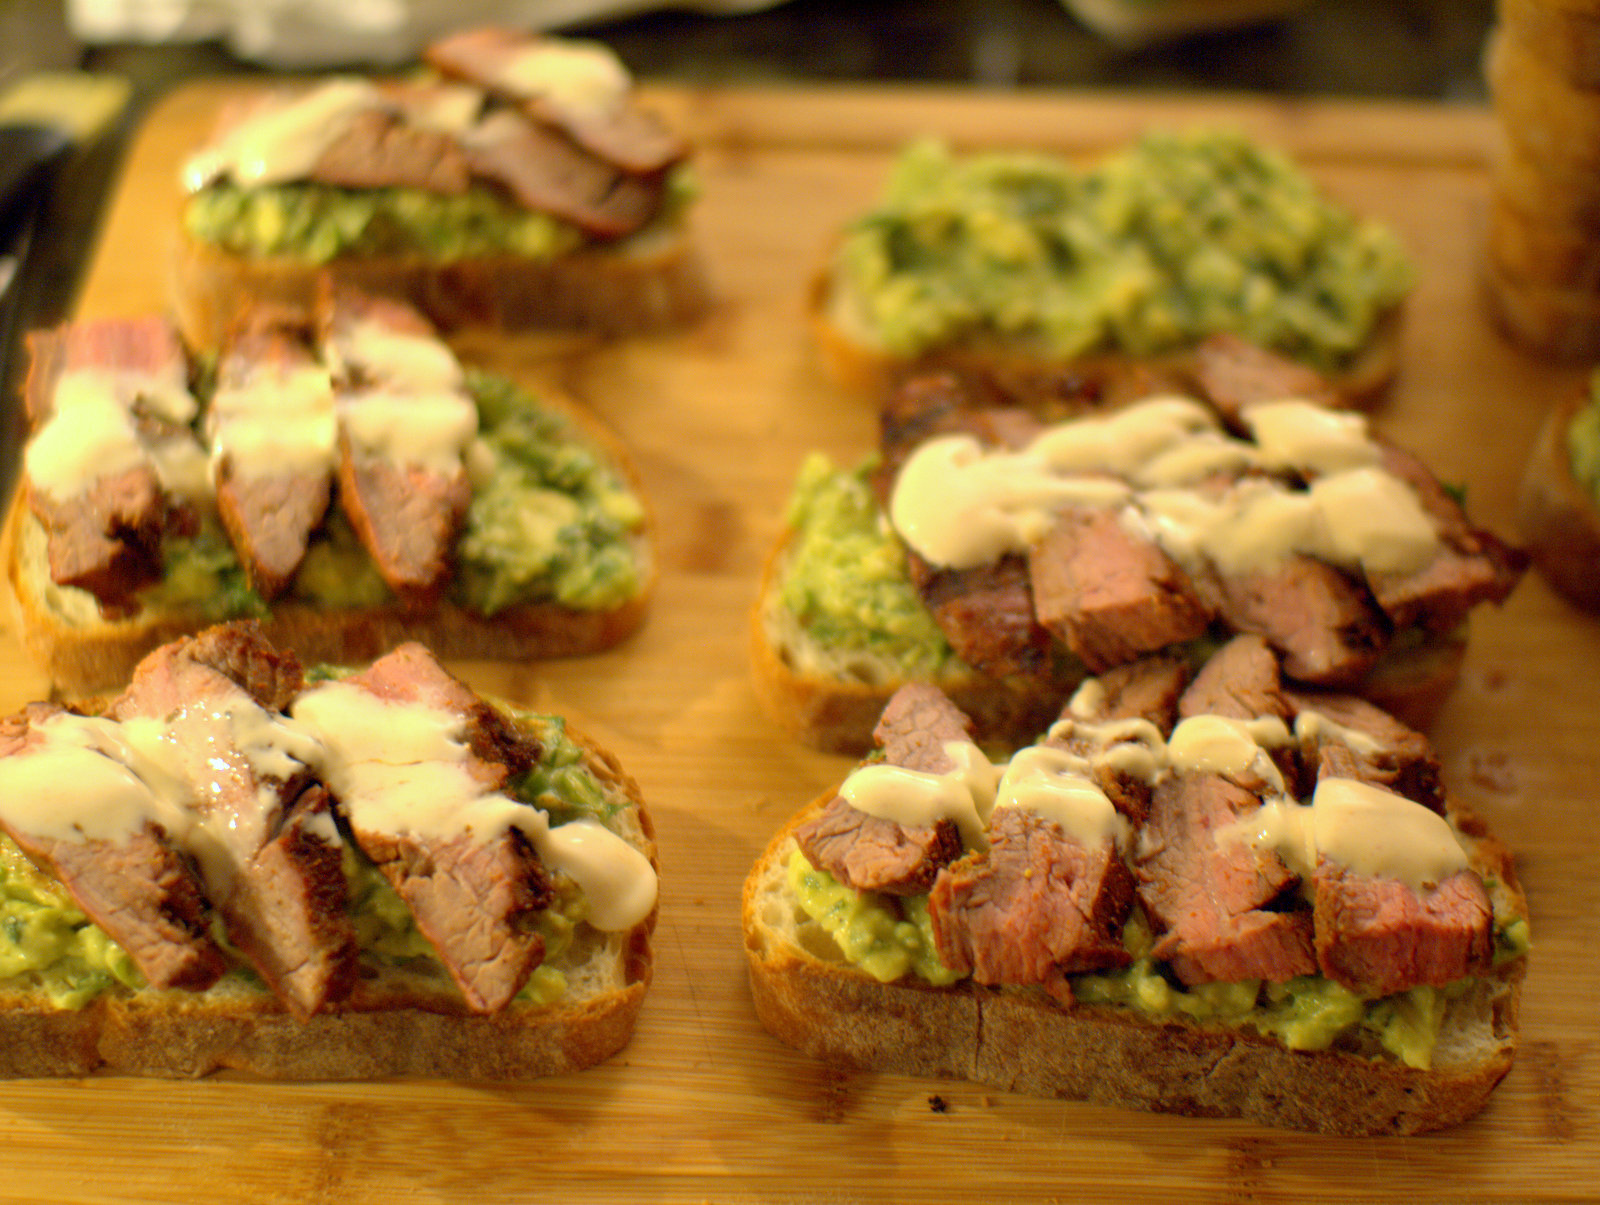 grilled flank steak sandwiches with avocado and spicy crema